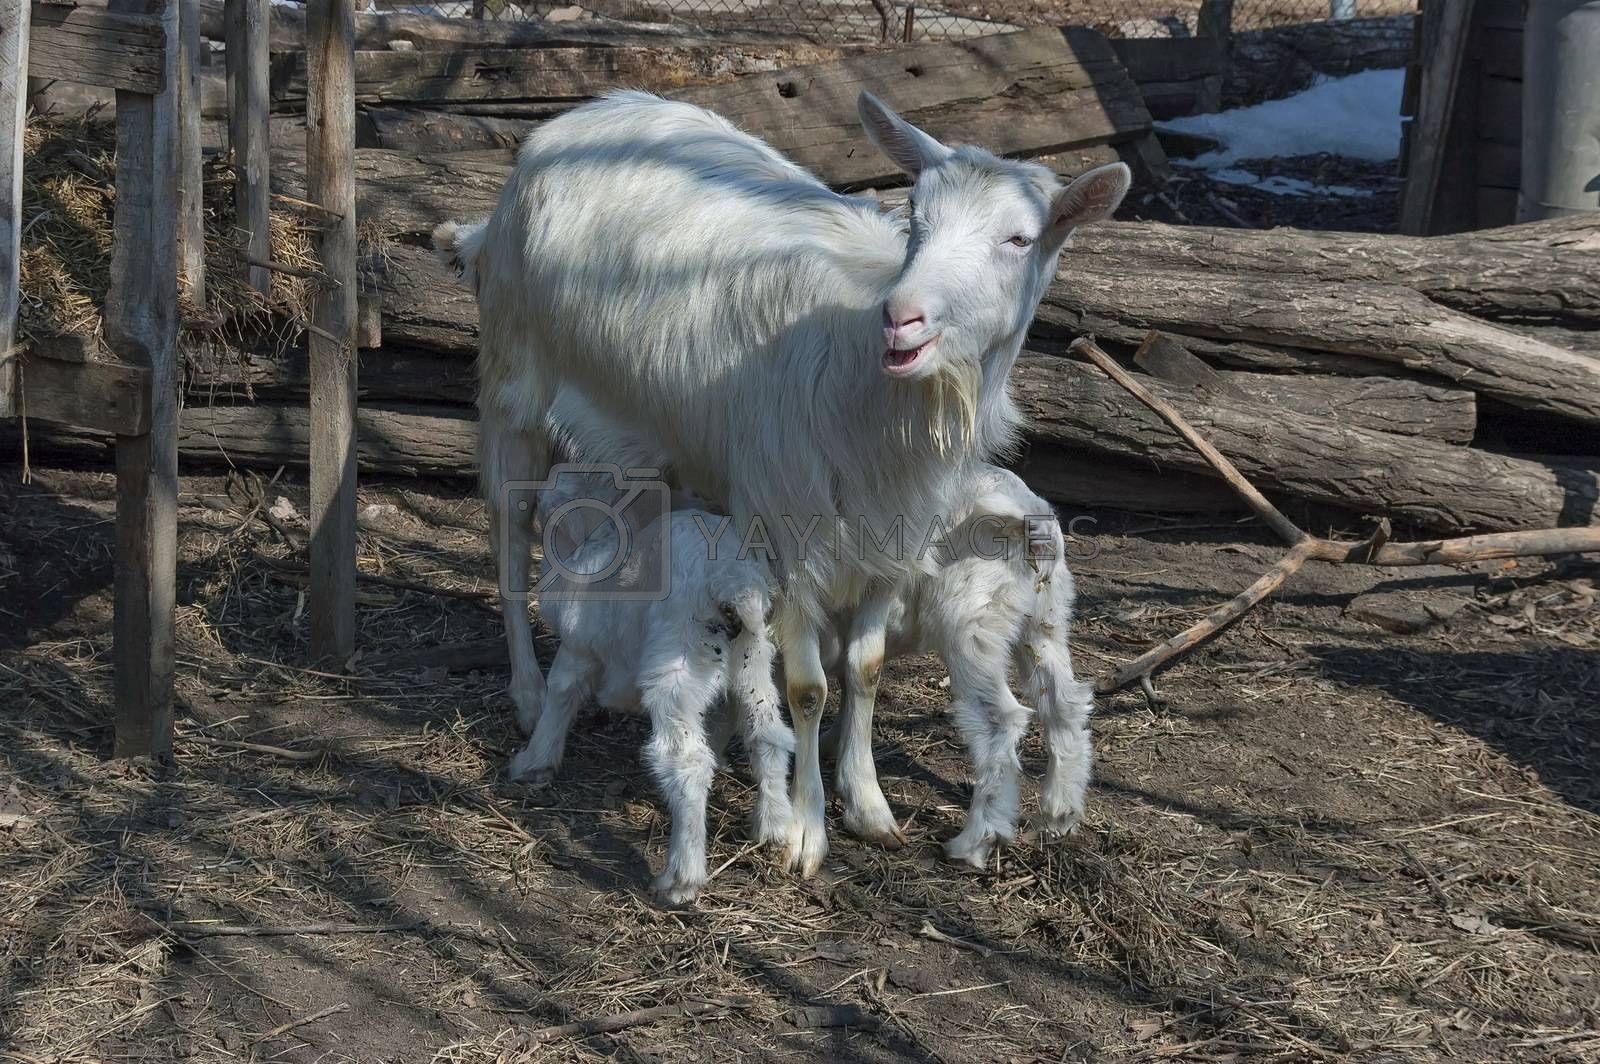 Royalty free image of Goat with two suck kid by intsys